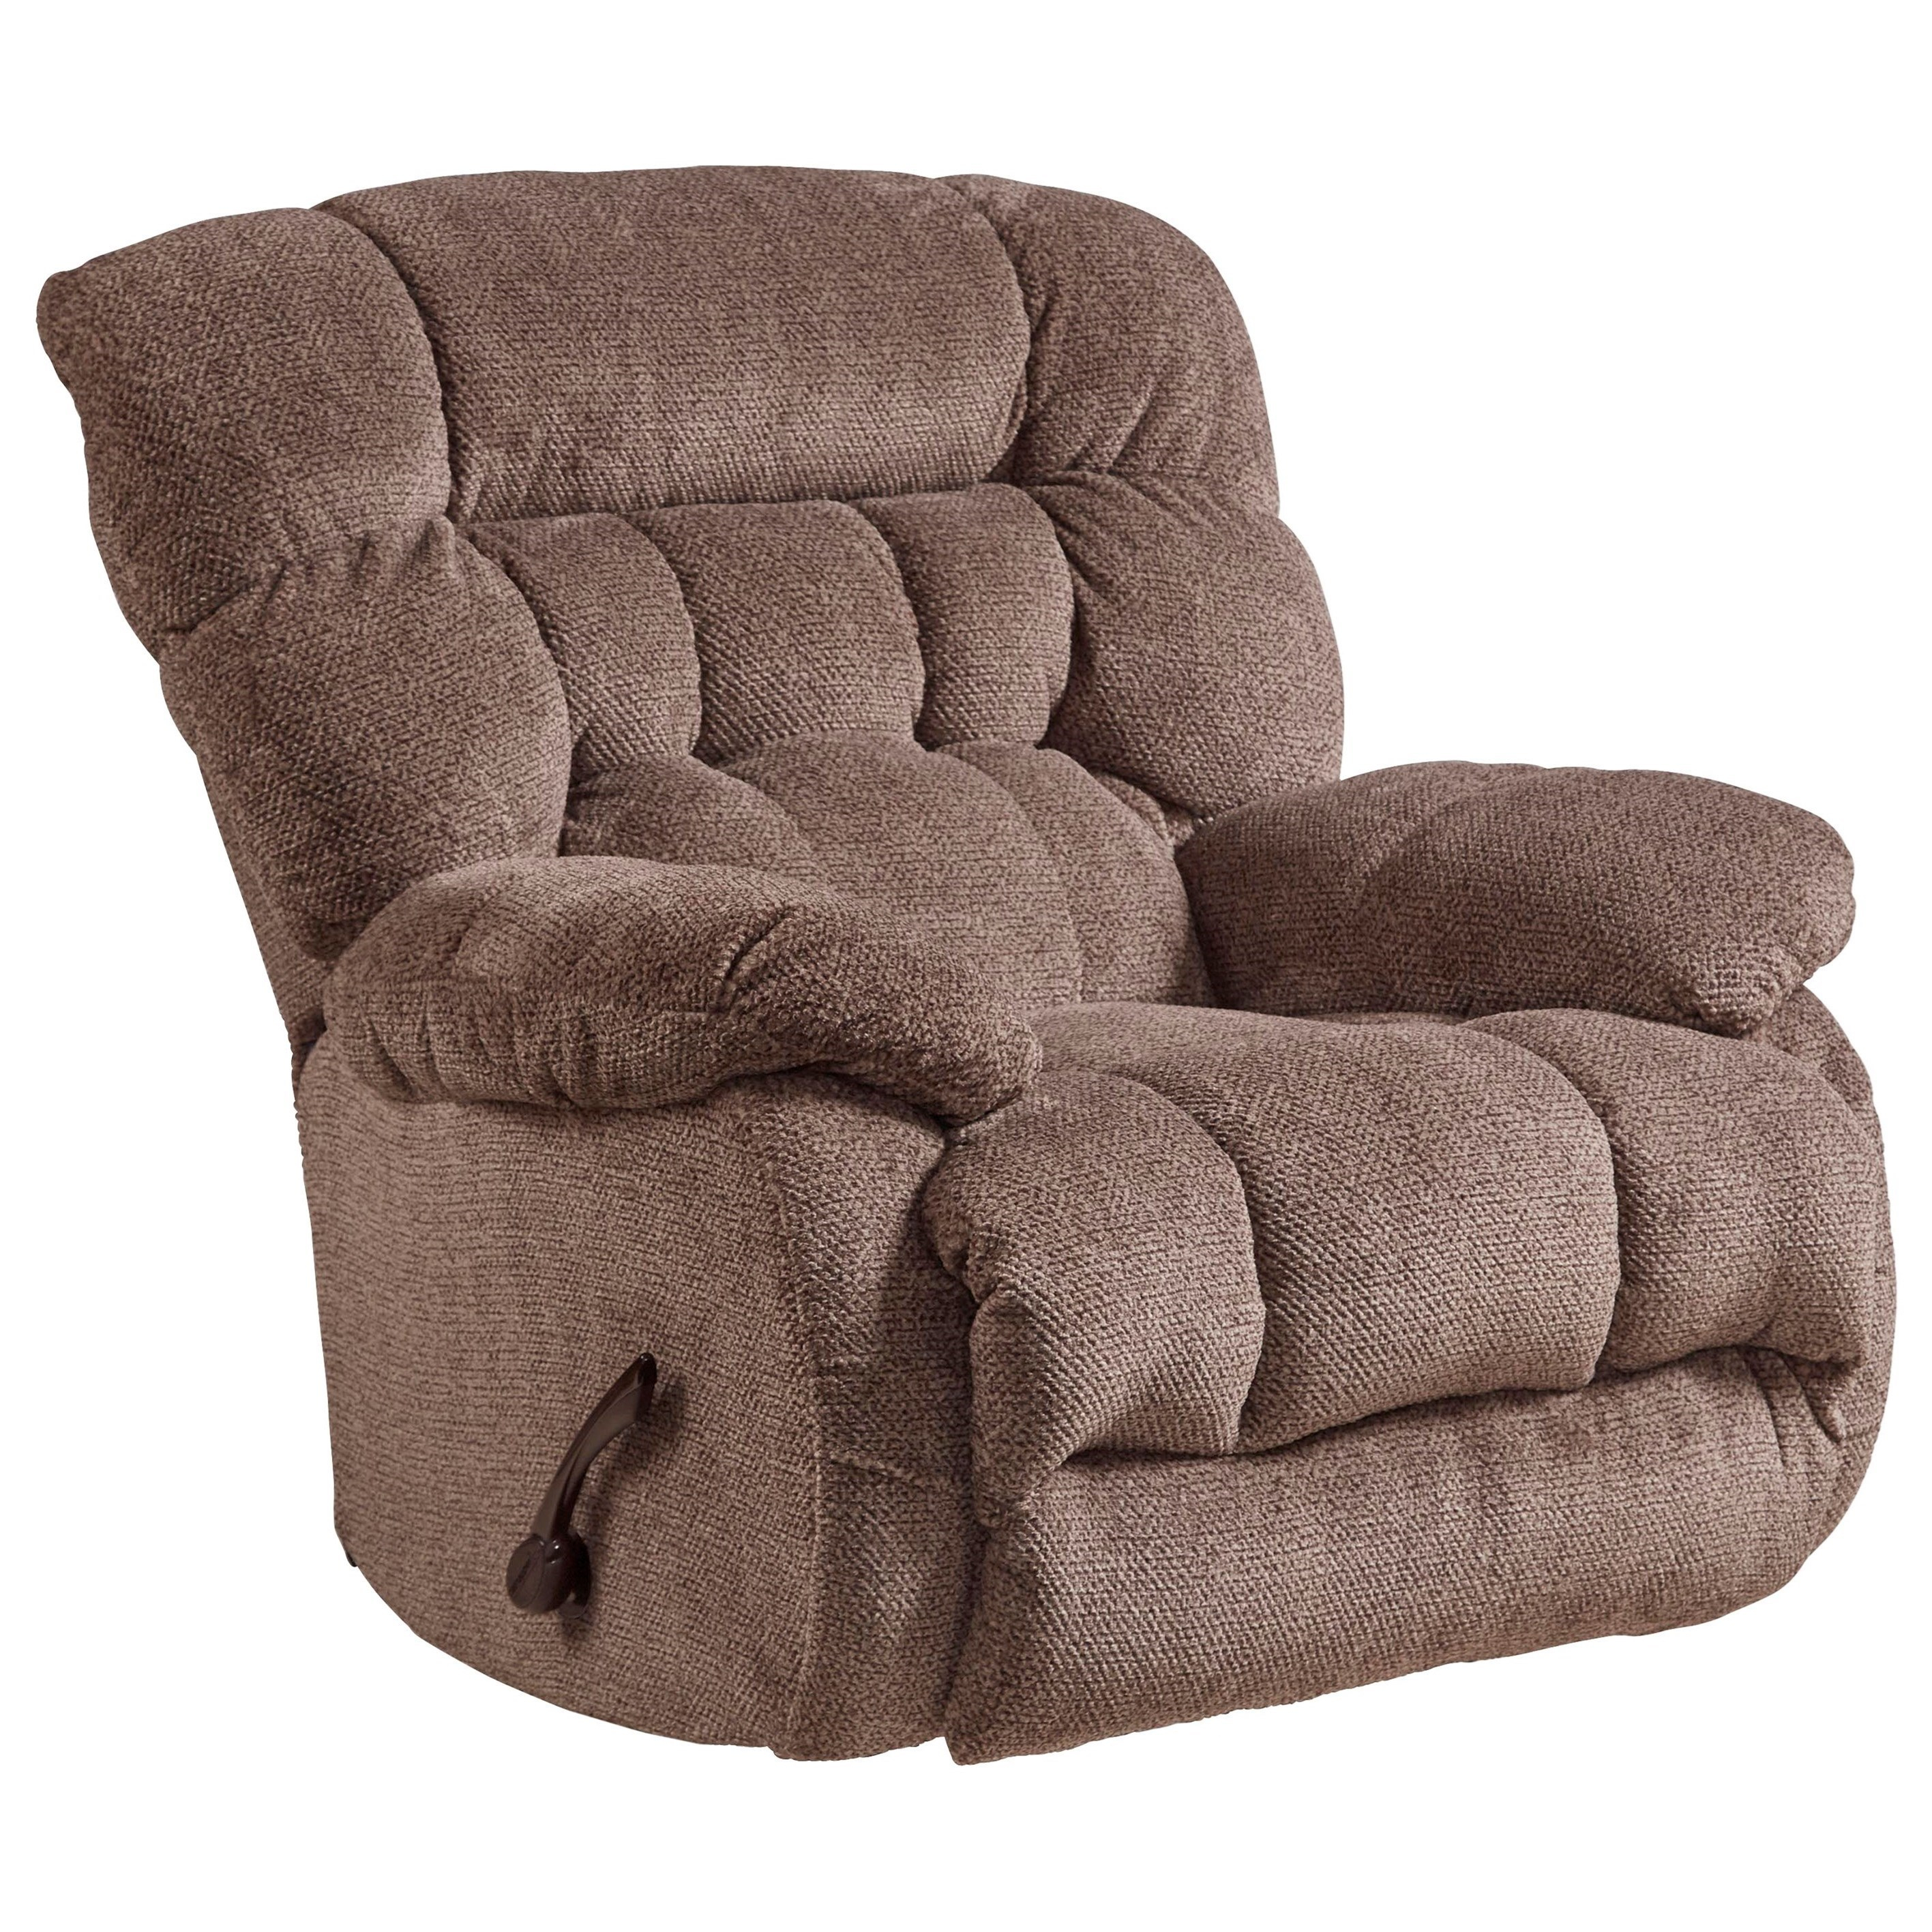 Catnapper Motion Chairs And Recliners Daly Swivel Glider Recliner With Gibson Swivel Cuddler Chairs (View 5 of 25)